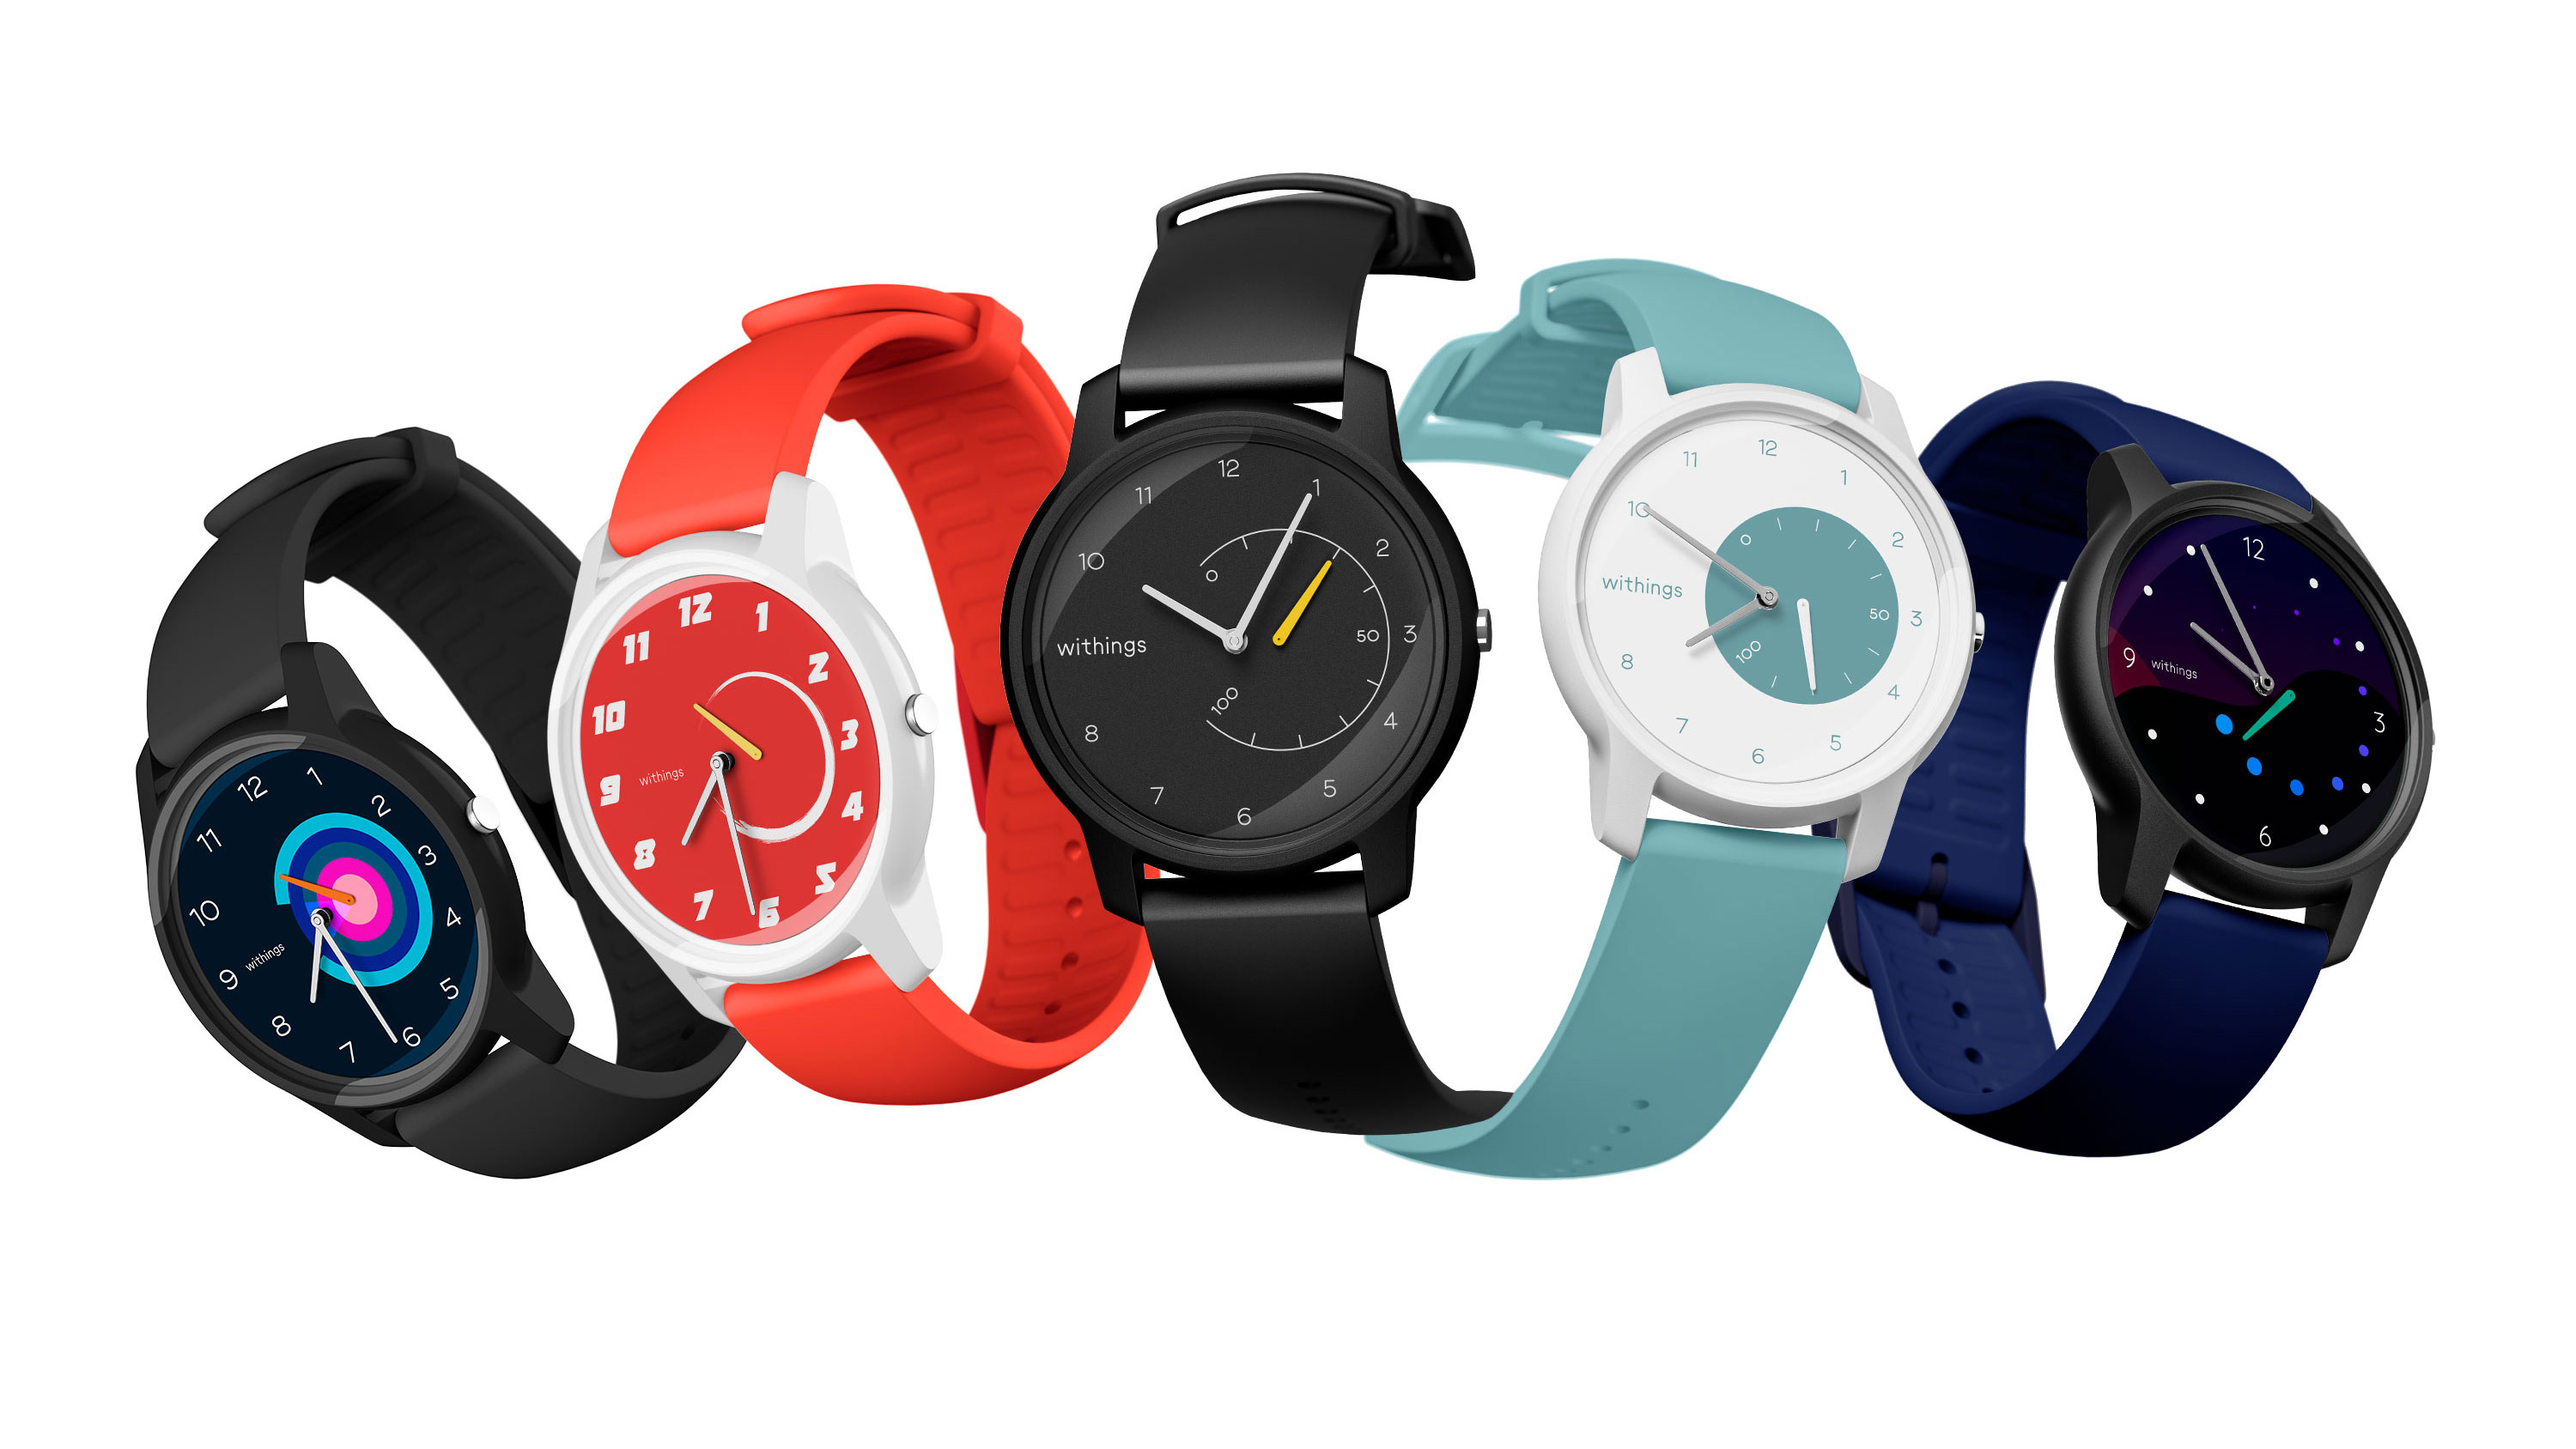 Withings Move ECG is the first hybrid smartwatch to feature an ECG monitor